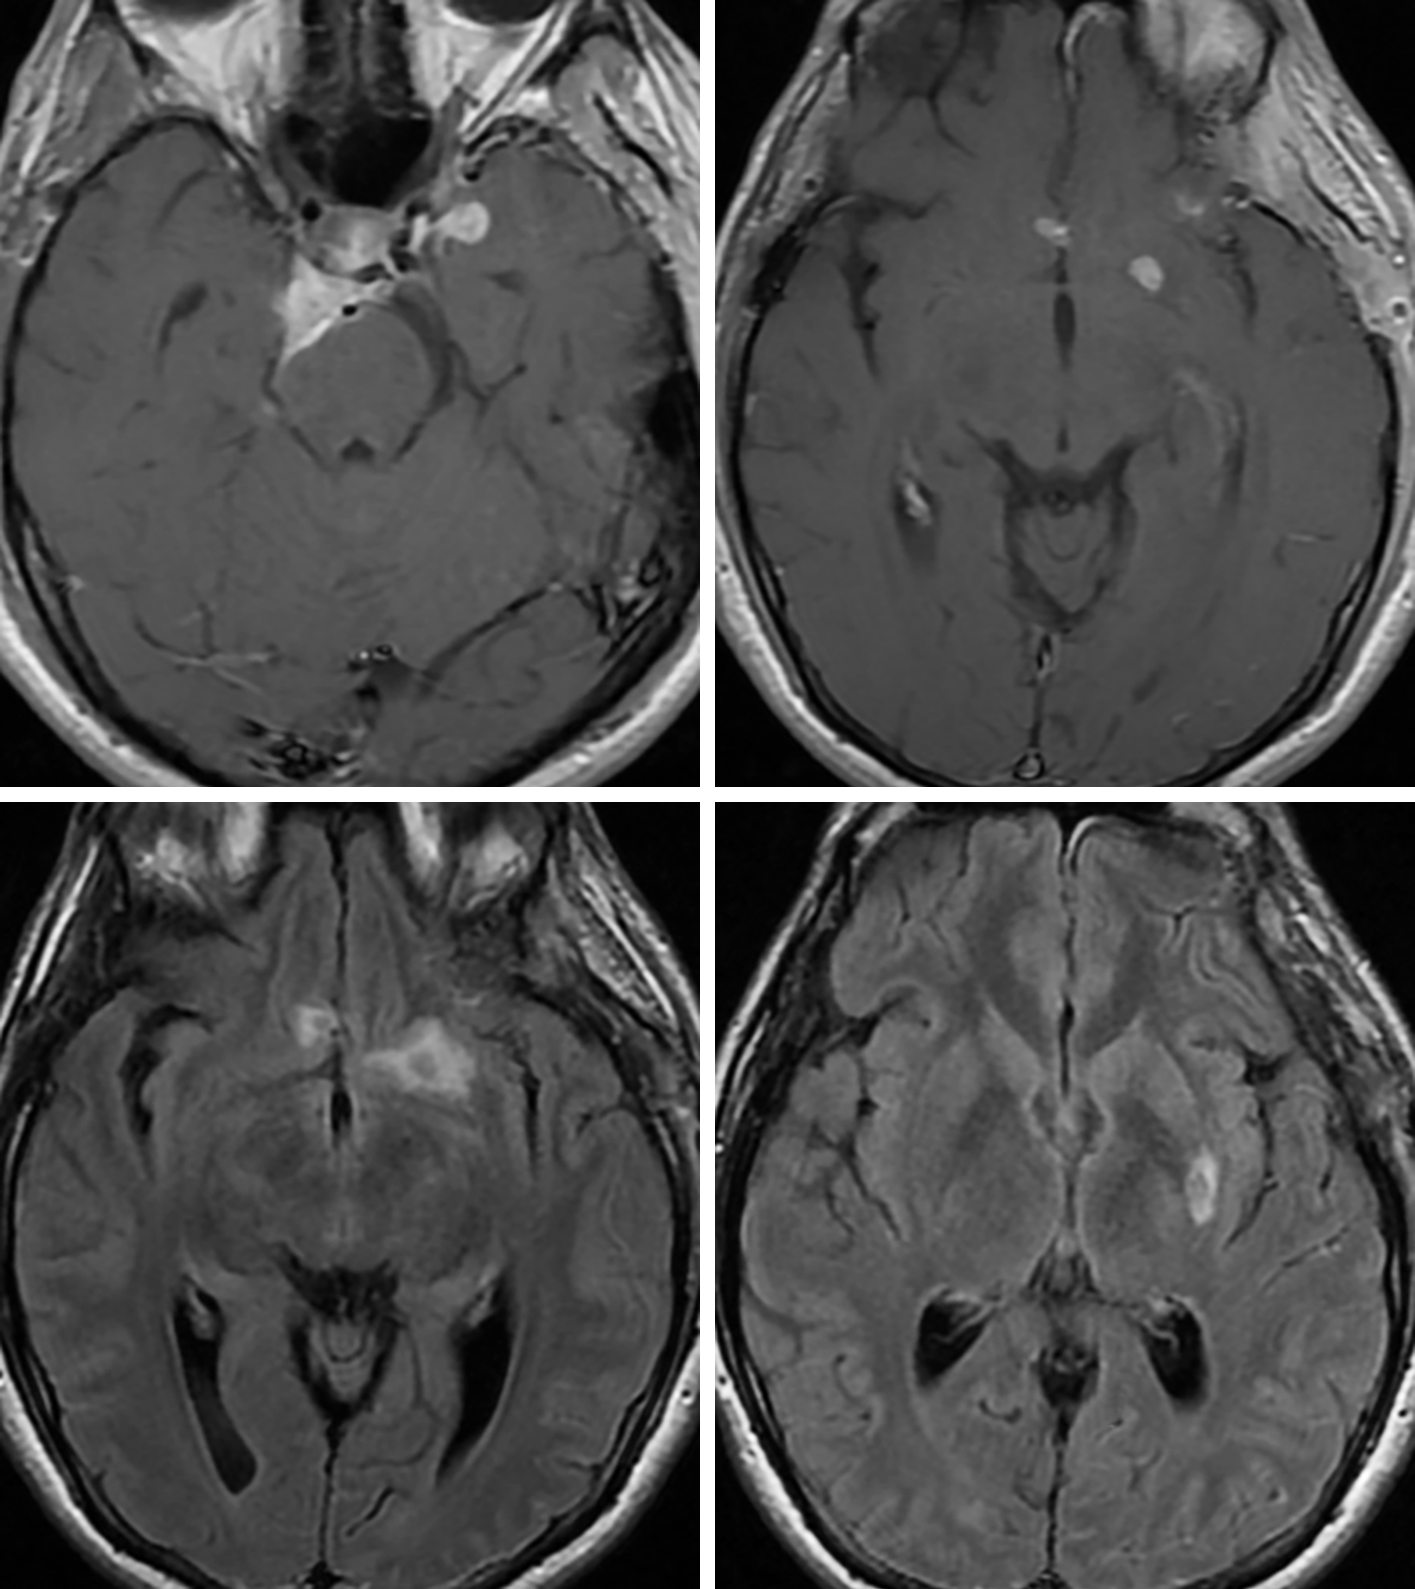 Figure 3: Axial T1 postcontrast images demonstrate prepontine cistern and medial left temporal enhancing coccidiomycosis involvement (top row left) and enhancing infectious tissue along the medial anterior left lobe, in the right posterior orbital gyrus and in the left basal ganglia (top row right) that can also be seen in dural-based and parenchymal metastatic disease. The parenchymal lesions also demonstrate nonspecific surrounding FLAIR hyperintense edema (bottom row left, bottom row right) that would also be typical of parenchymal metastatic disease.